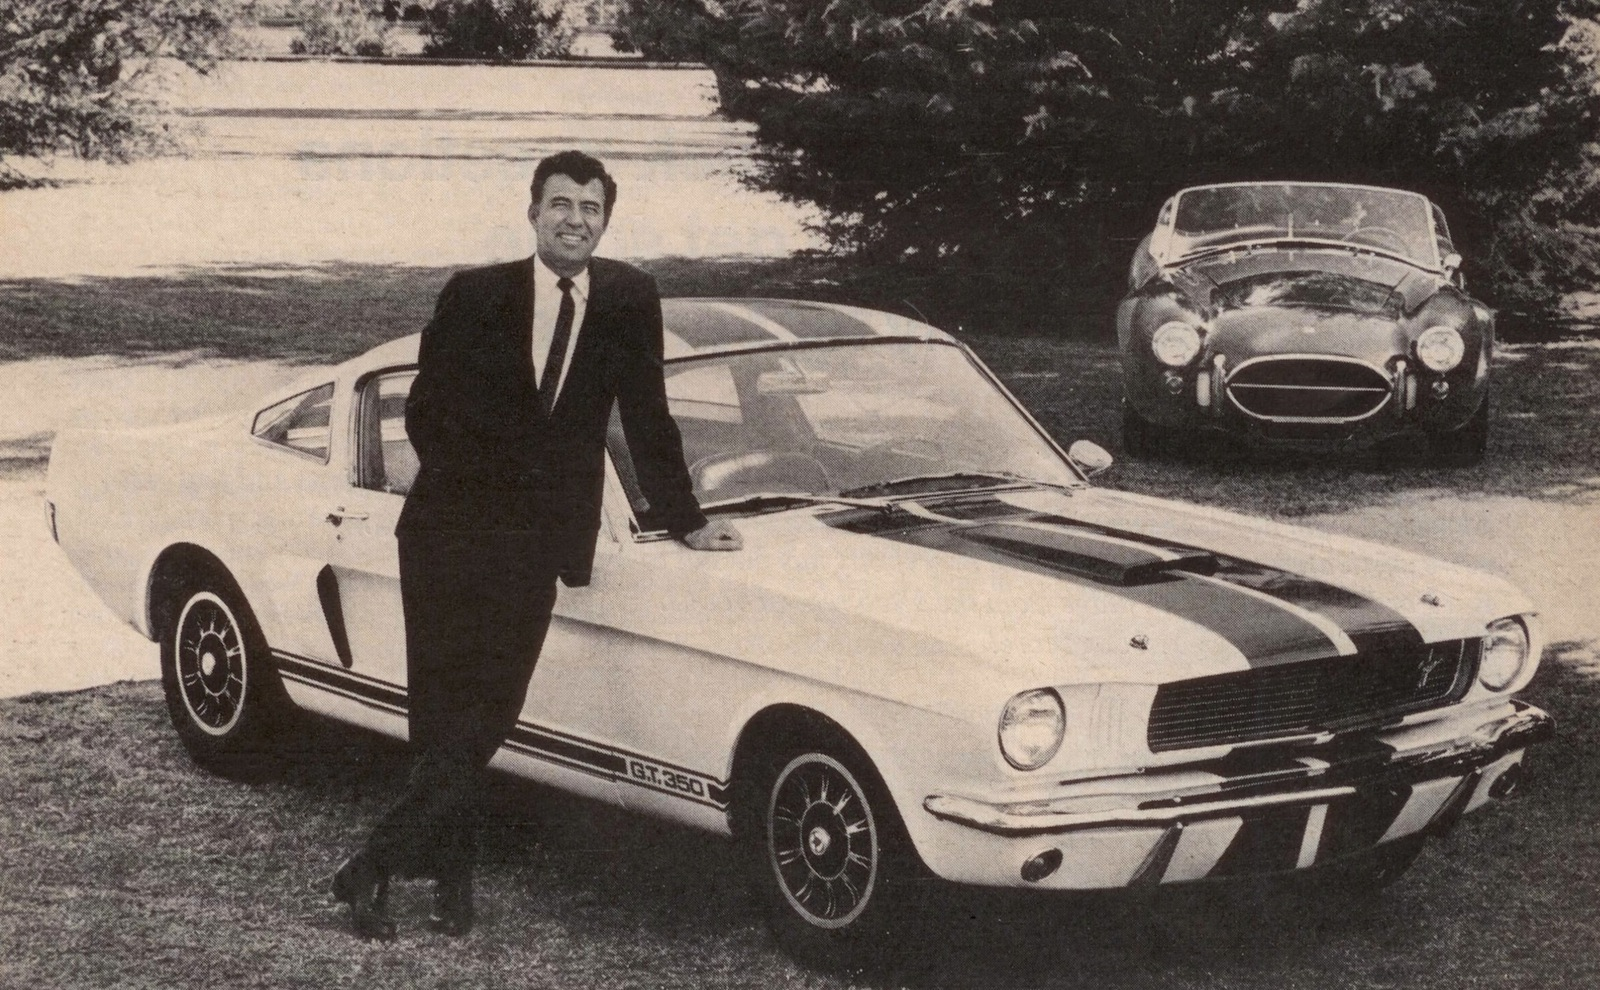 The 1966 Shelby GT350 – This Would Be A Cool Car To Own